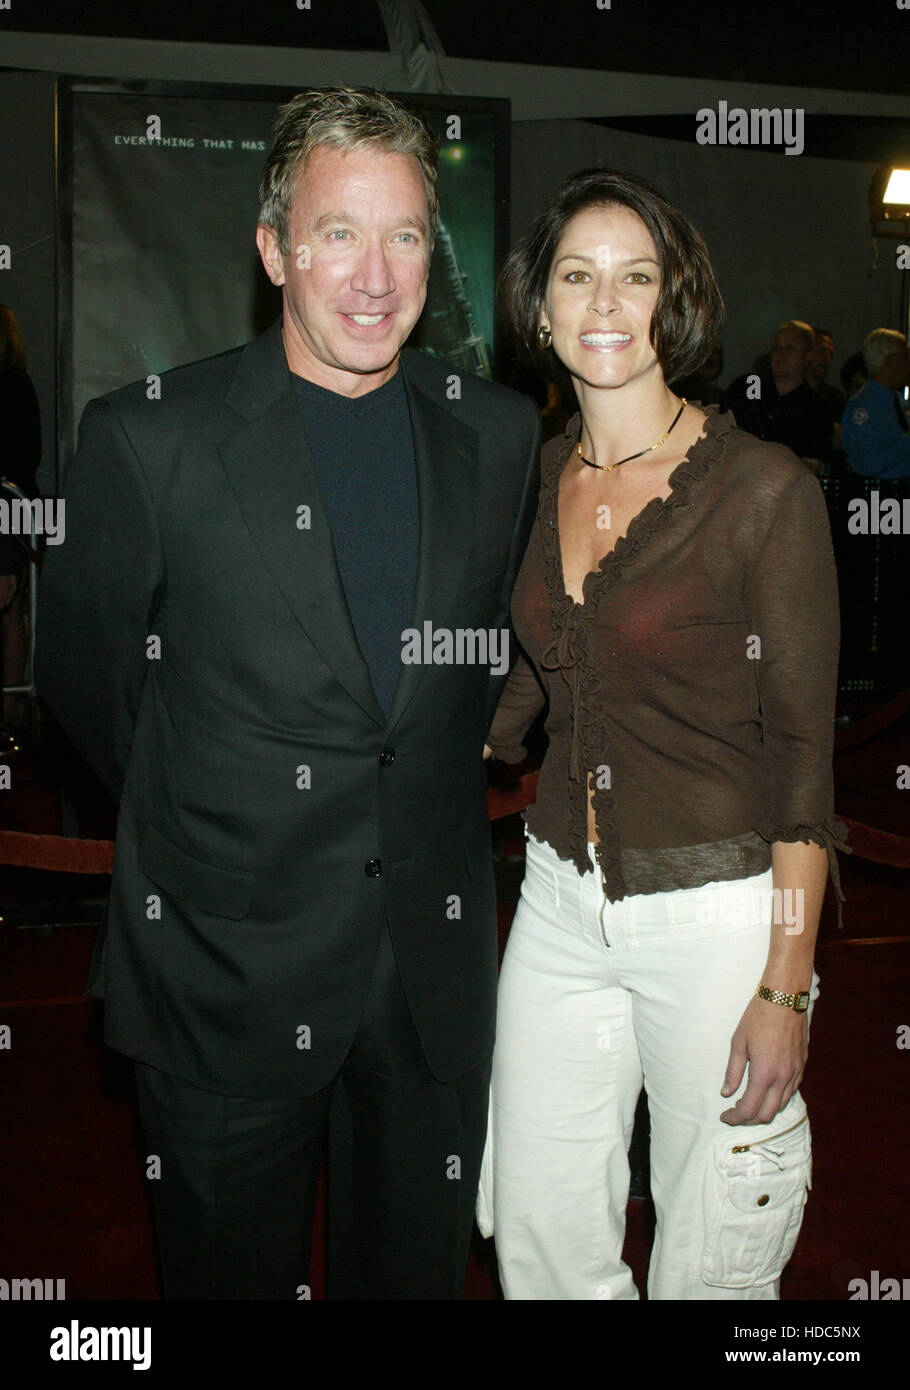 Tim Allen and girlfriend Jane Hadjuk at the world premiere of the film,  Matrix Revolutions, at the Disney Concert - Stock Image